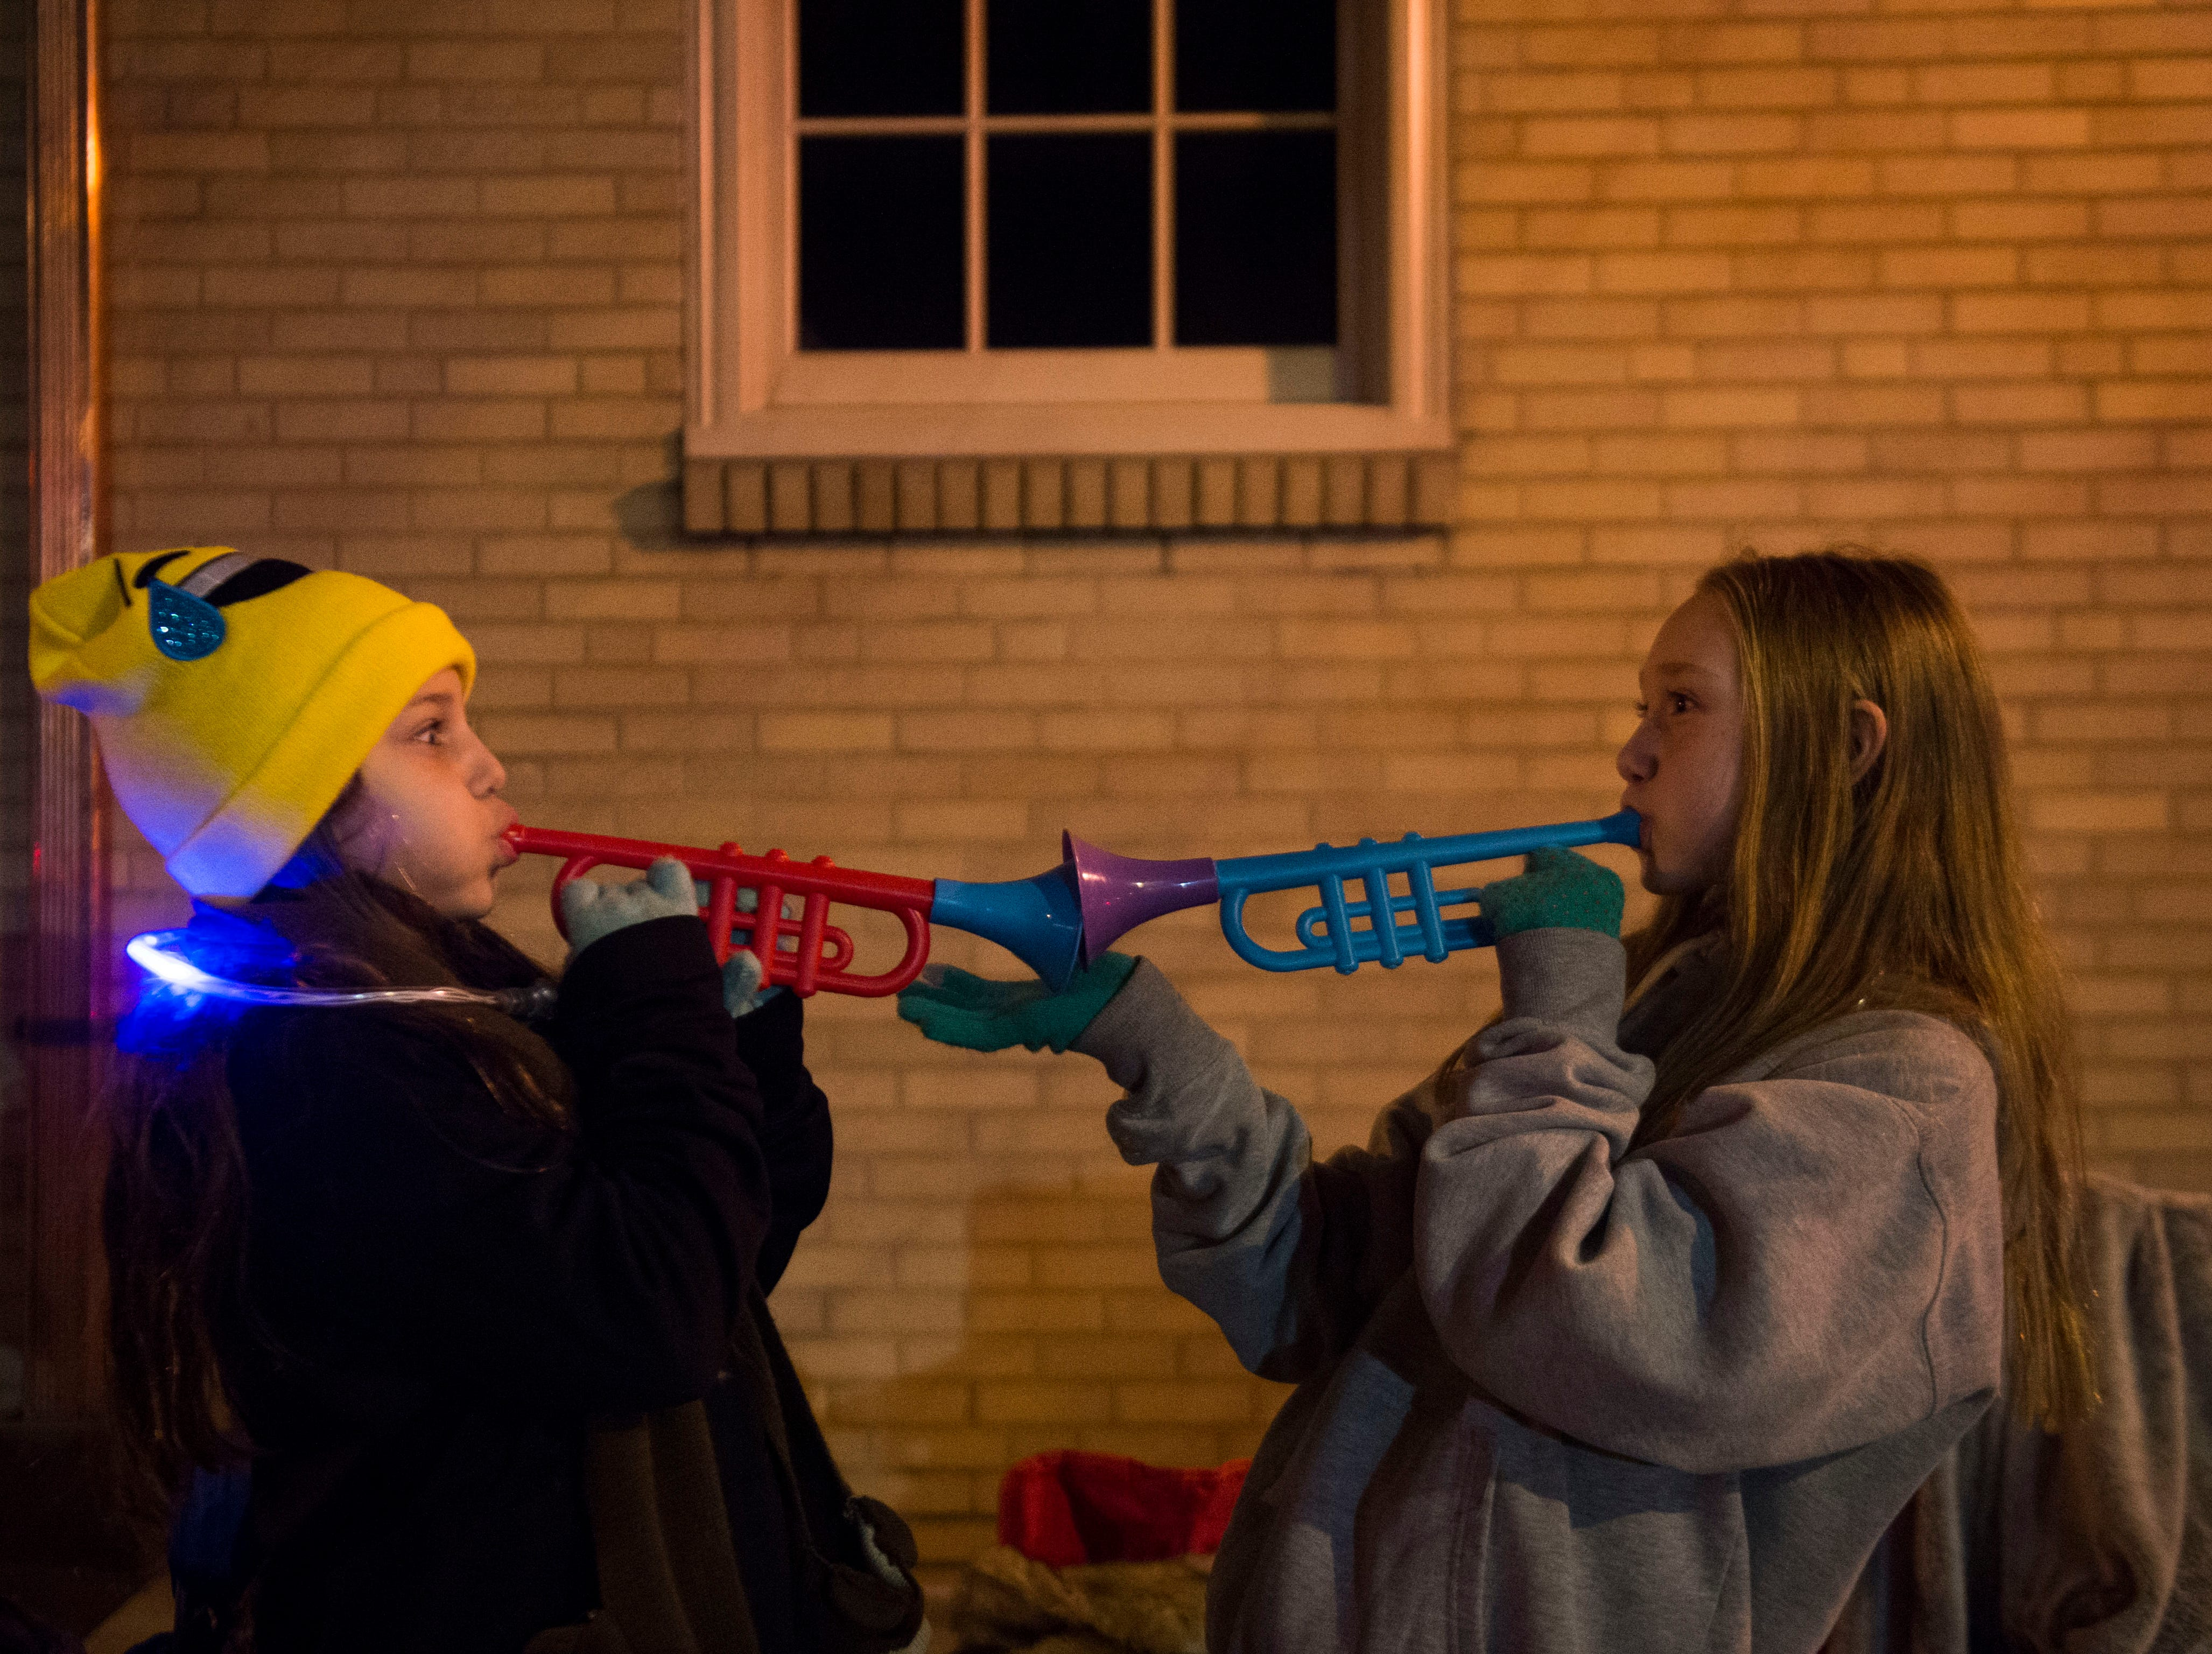 From left Sydney Harbeston, 9, and Lyla Tharp, 9, both of Knoxville, play with toy horns before the annual WIVK Christmas Parade in downtown Knoxville Friday, Dec. 7, 2018.